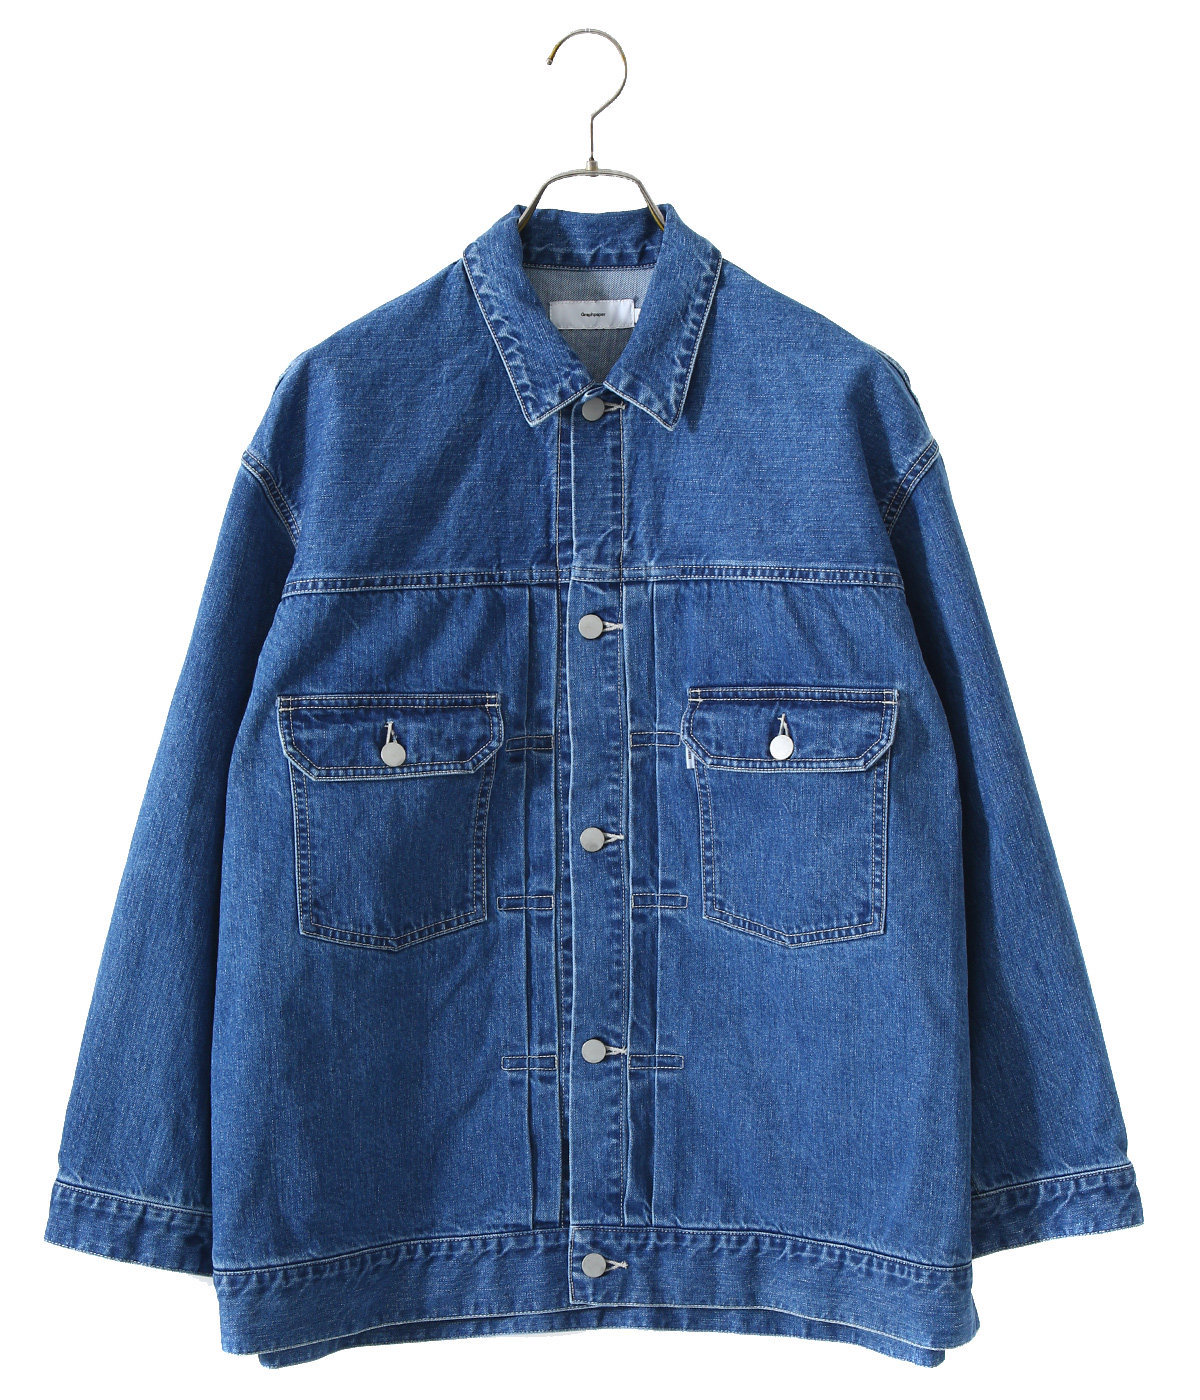 【別注】Denim Jacket -Limited-